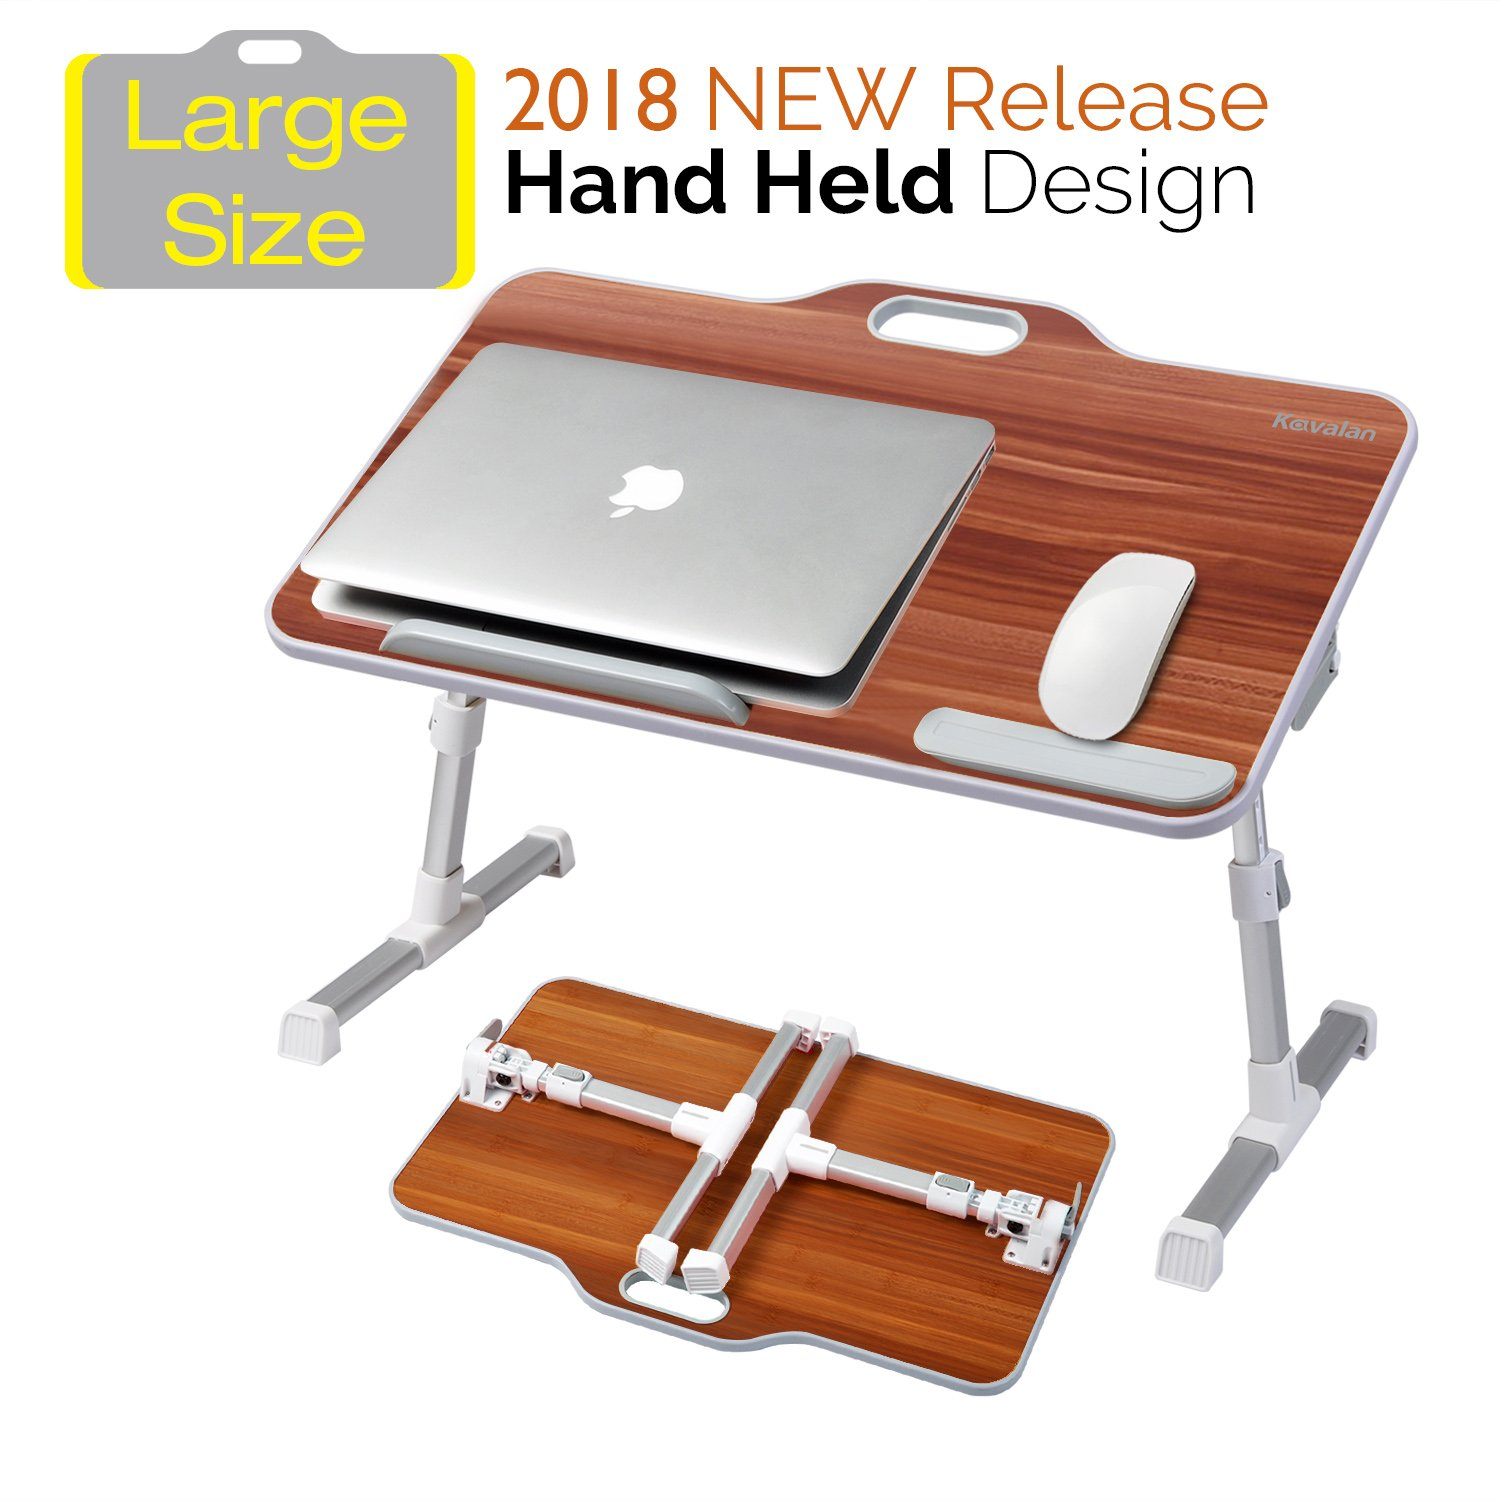 Kavalan [Large Size] Portable Laptop Table with Handle, Height & Angle Adjustable Sit and Stand Desk, Bed & Breakfast Table Tray, Foldable Notebook Stand Holder for Sofa Couch - American Cherry by Kavalan